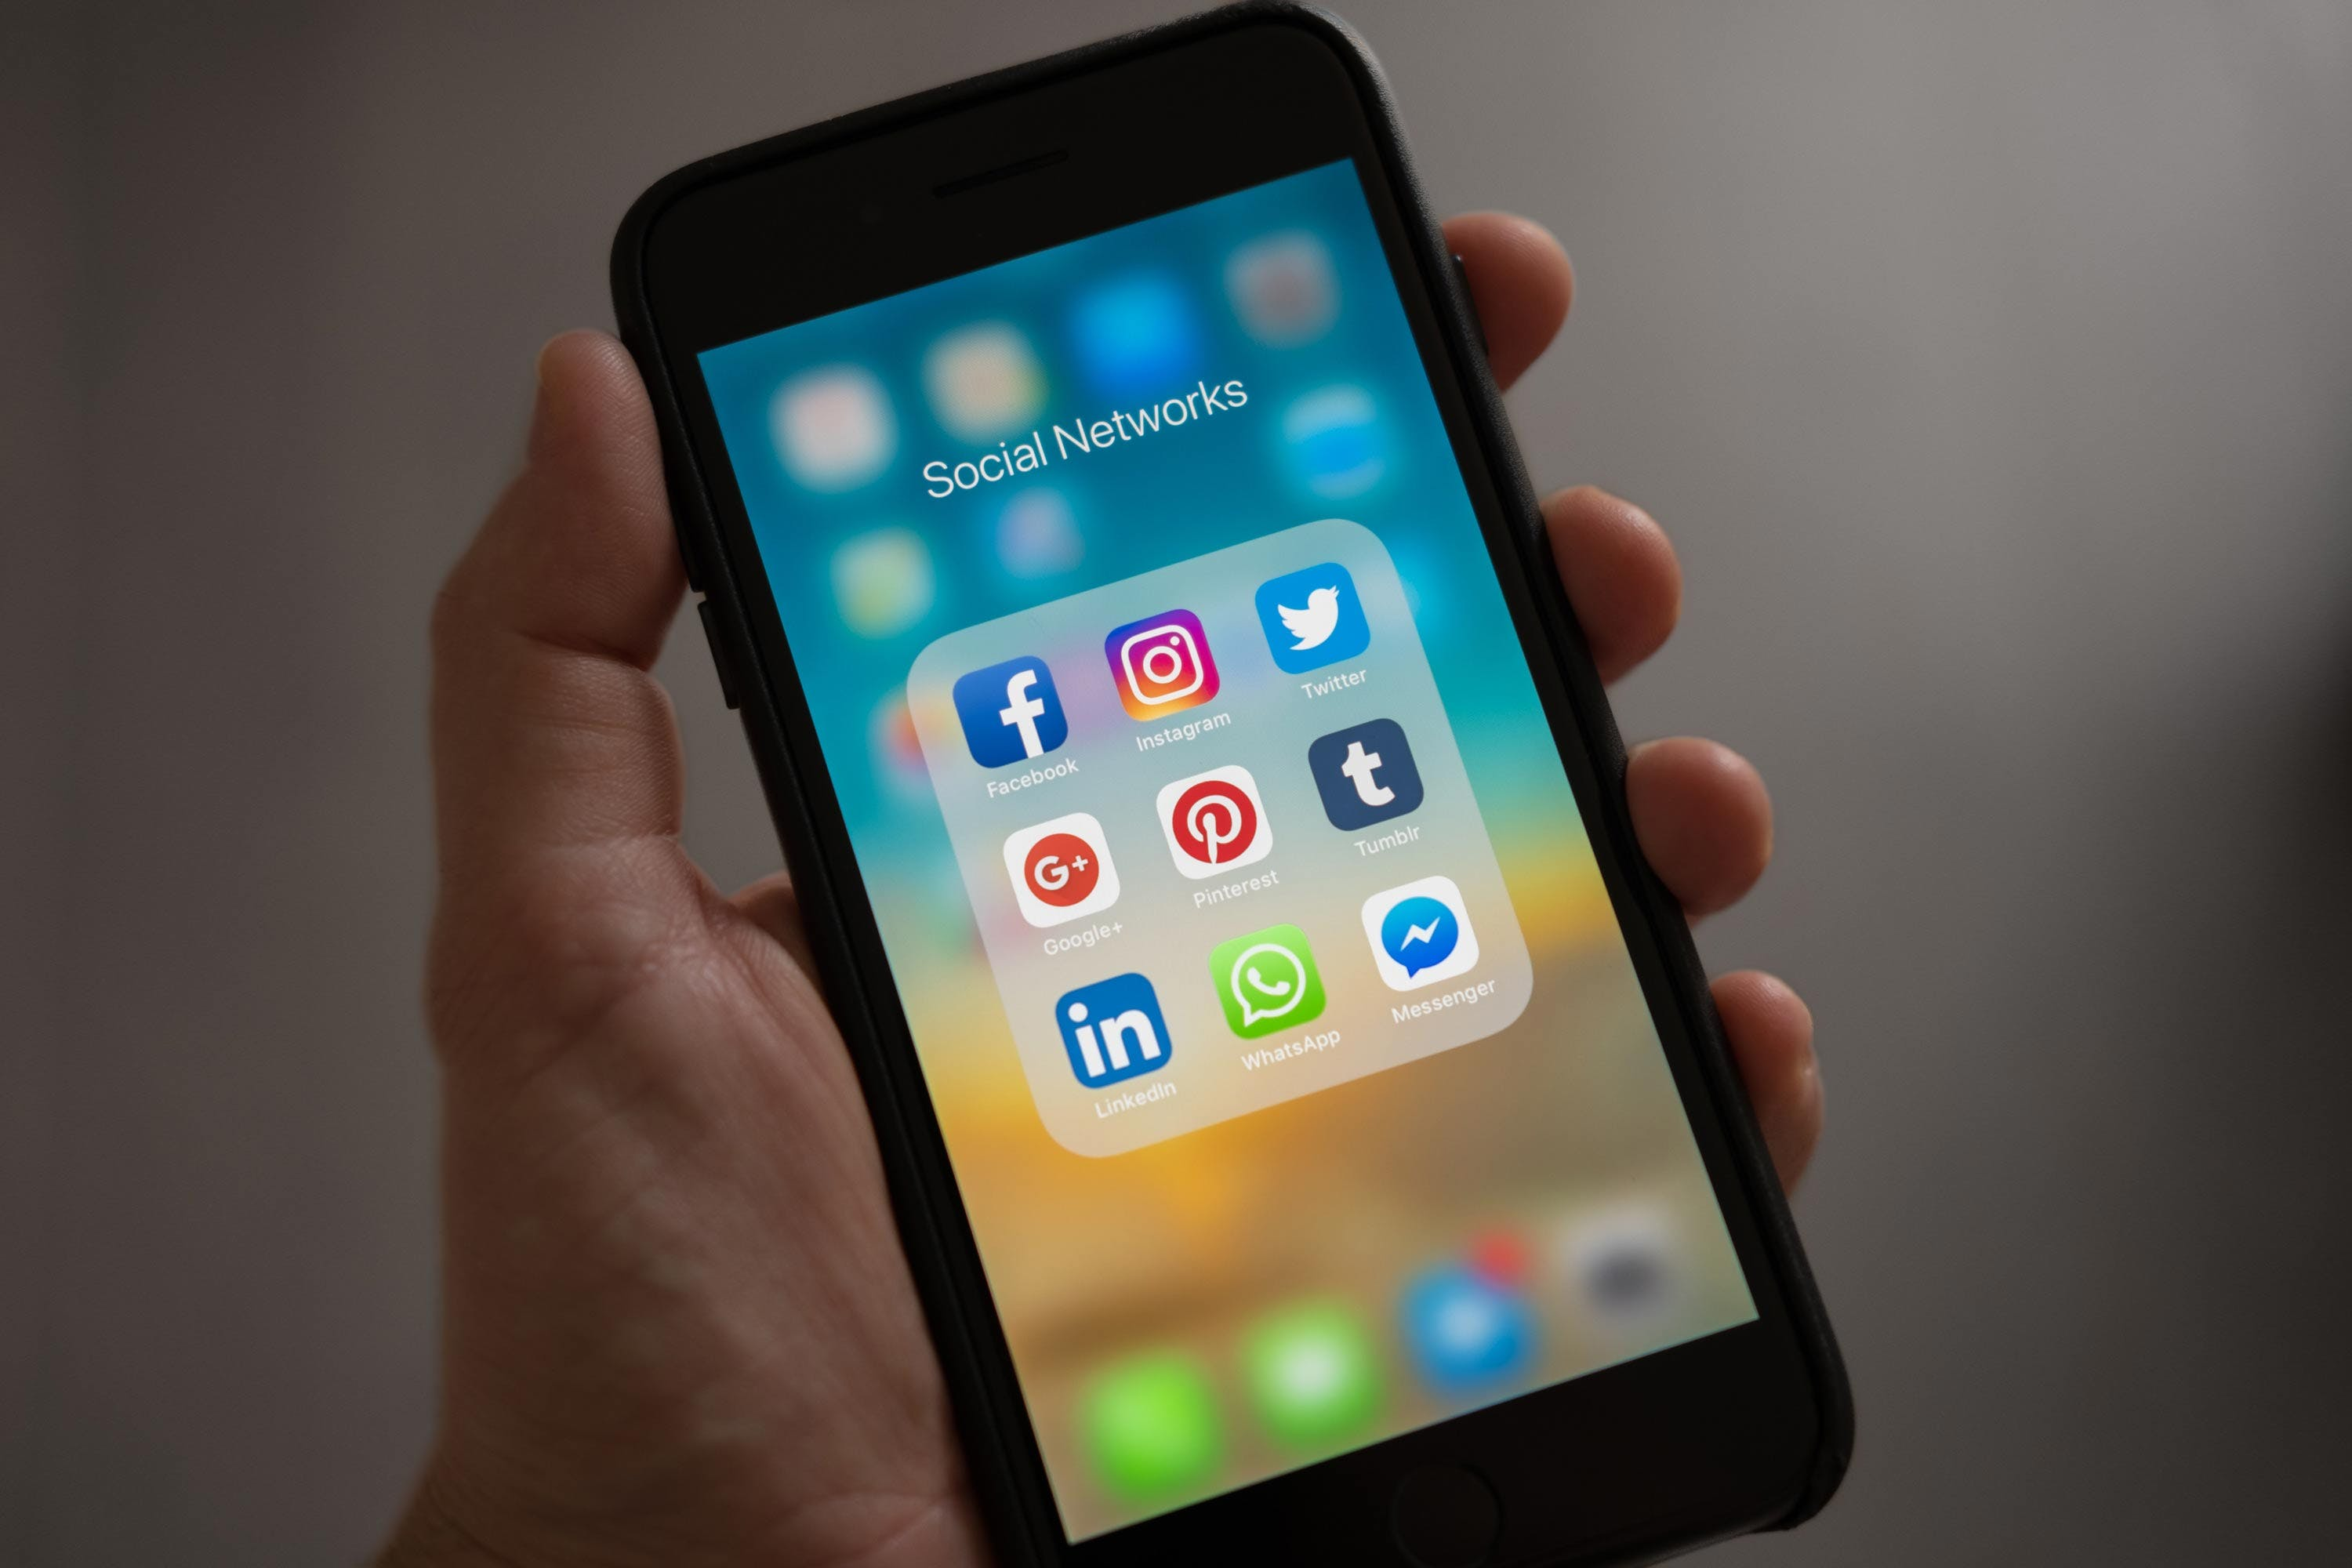 iphone in hand with social network apps